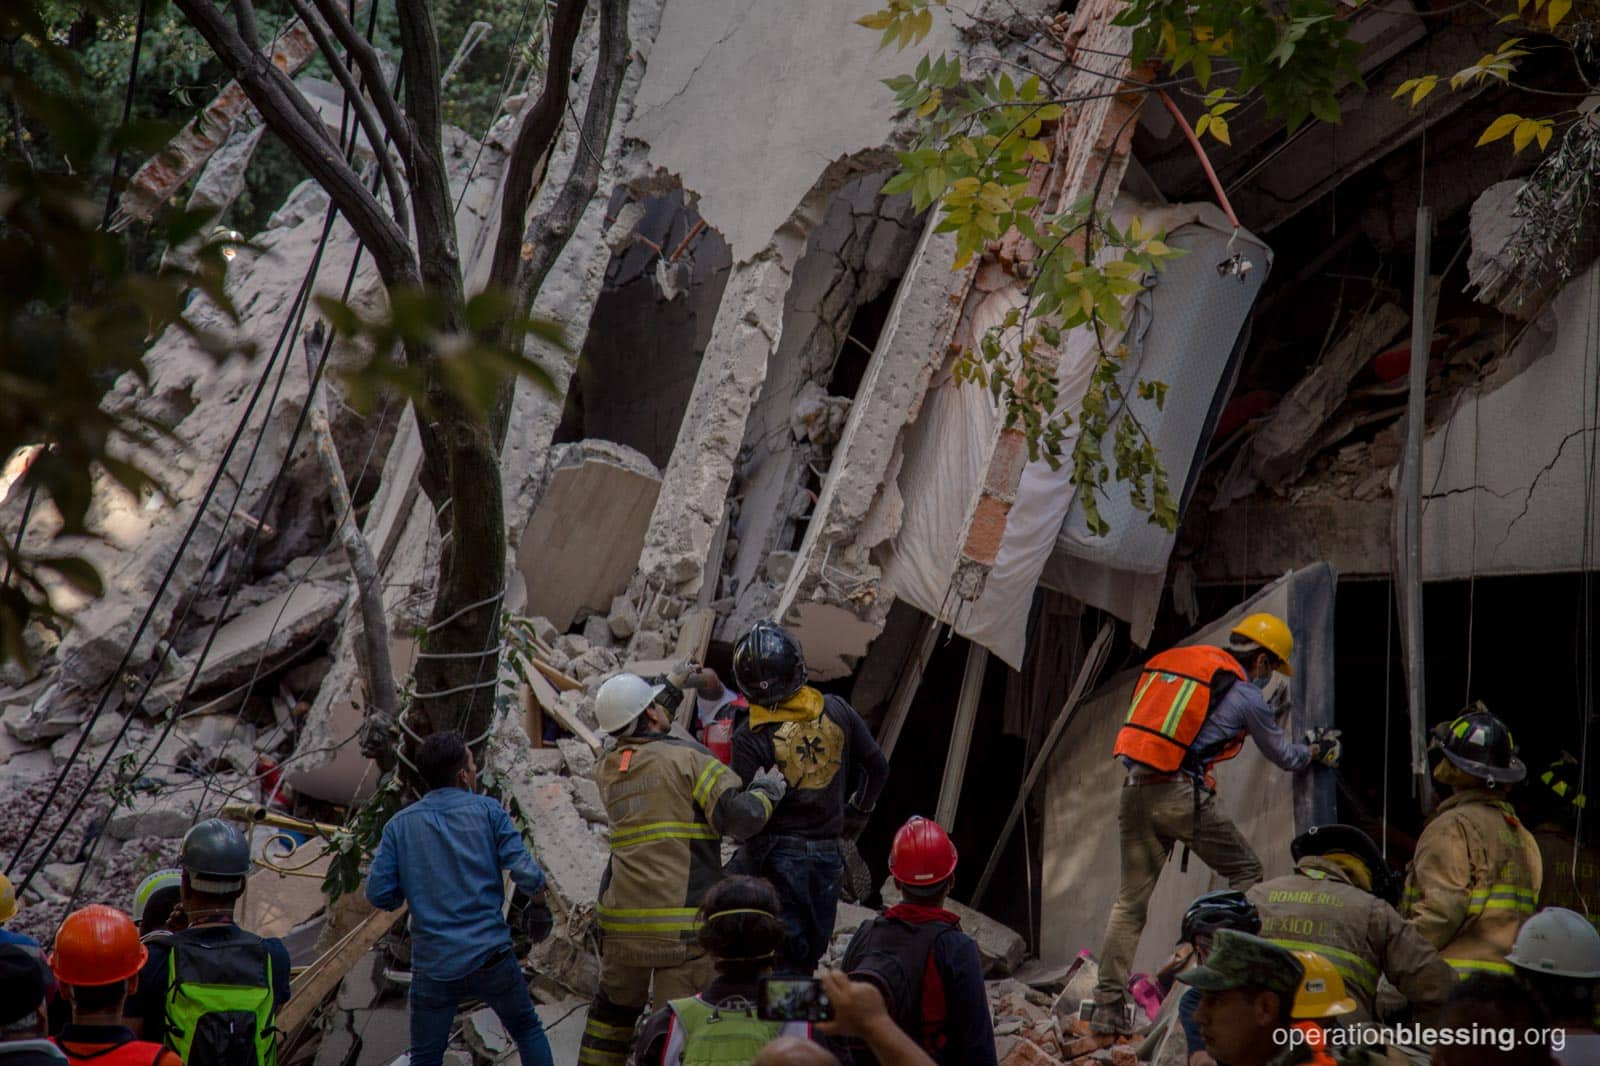 Earthquake damage in Mexico City after the second quake to hit the country in September 2017.